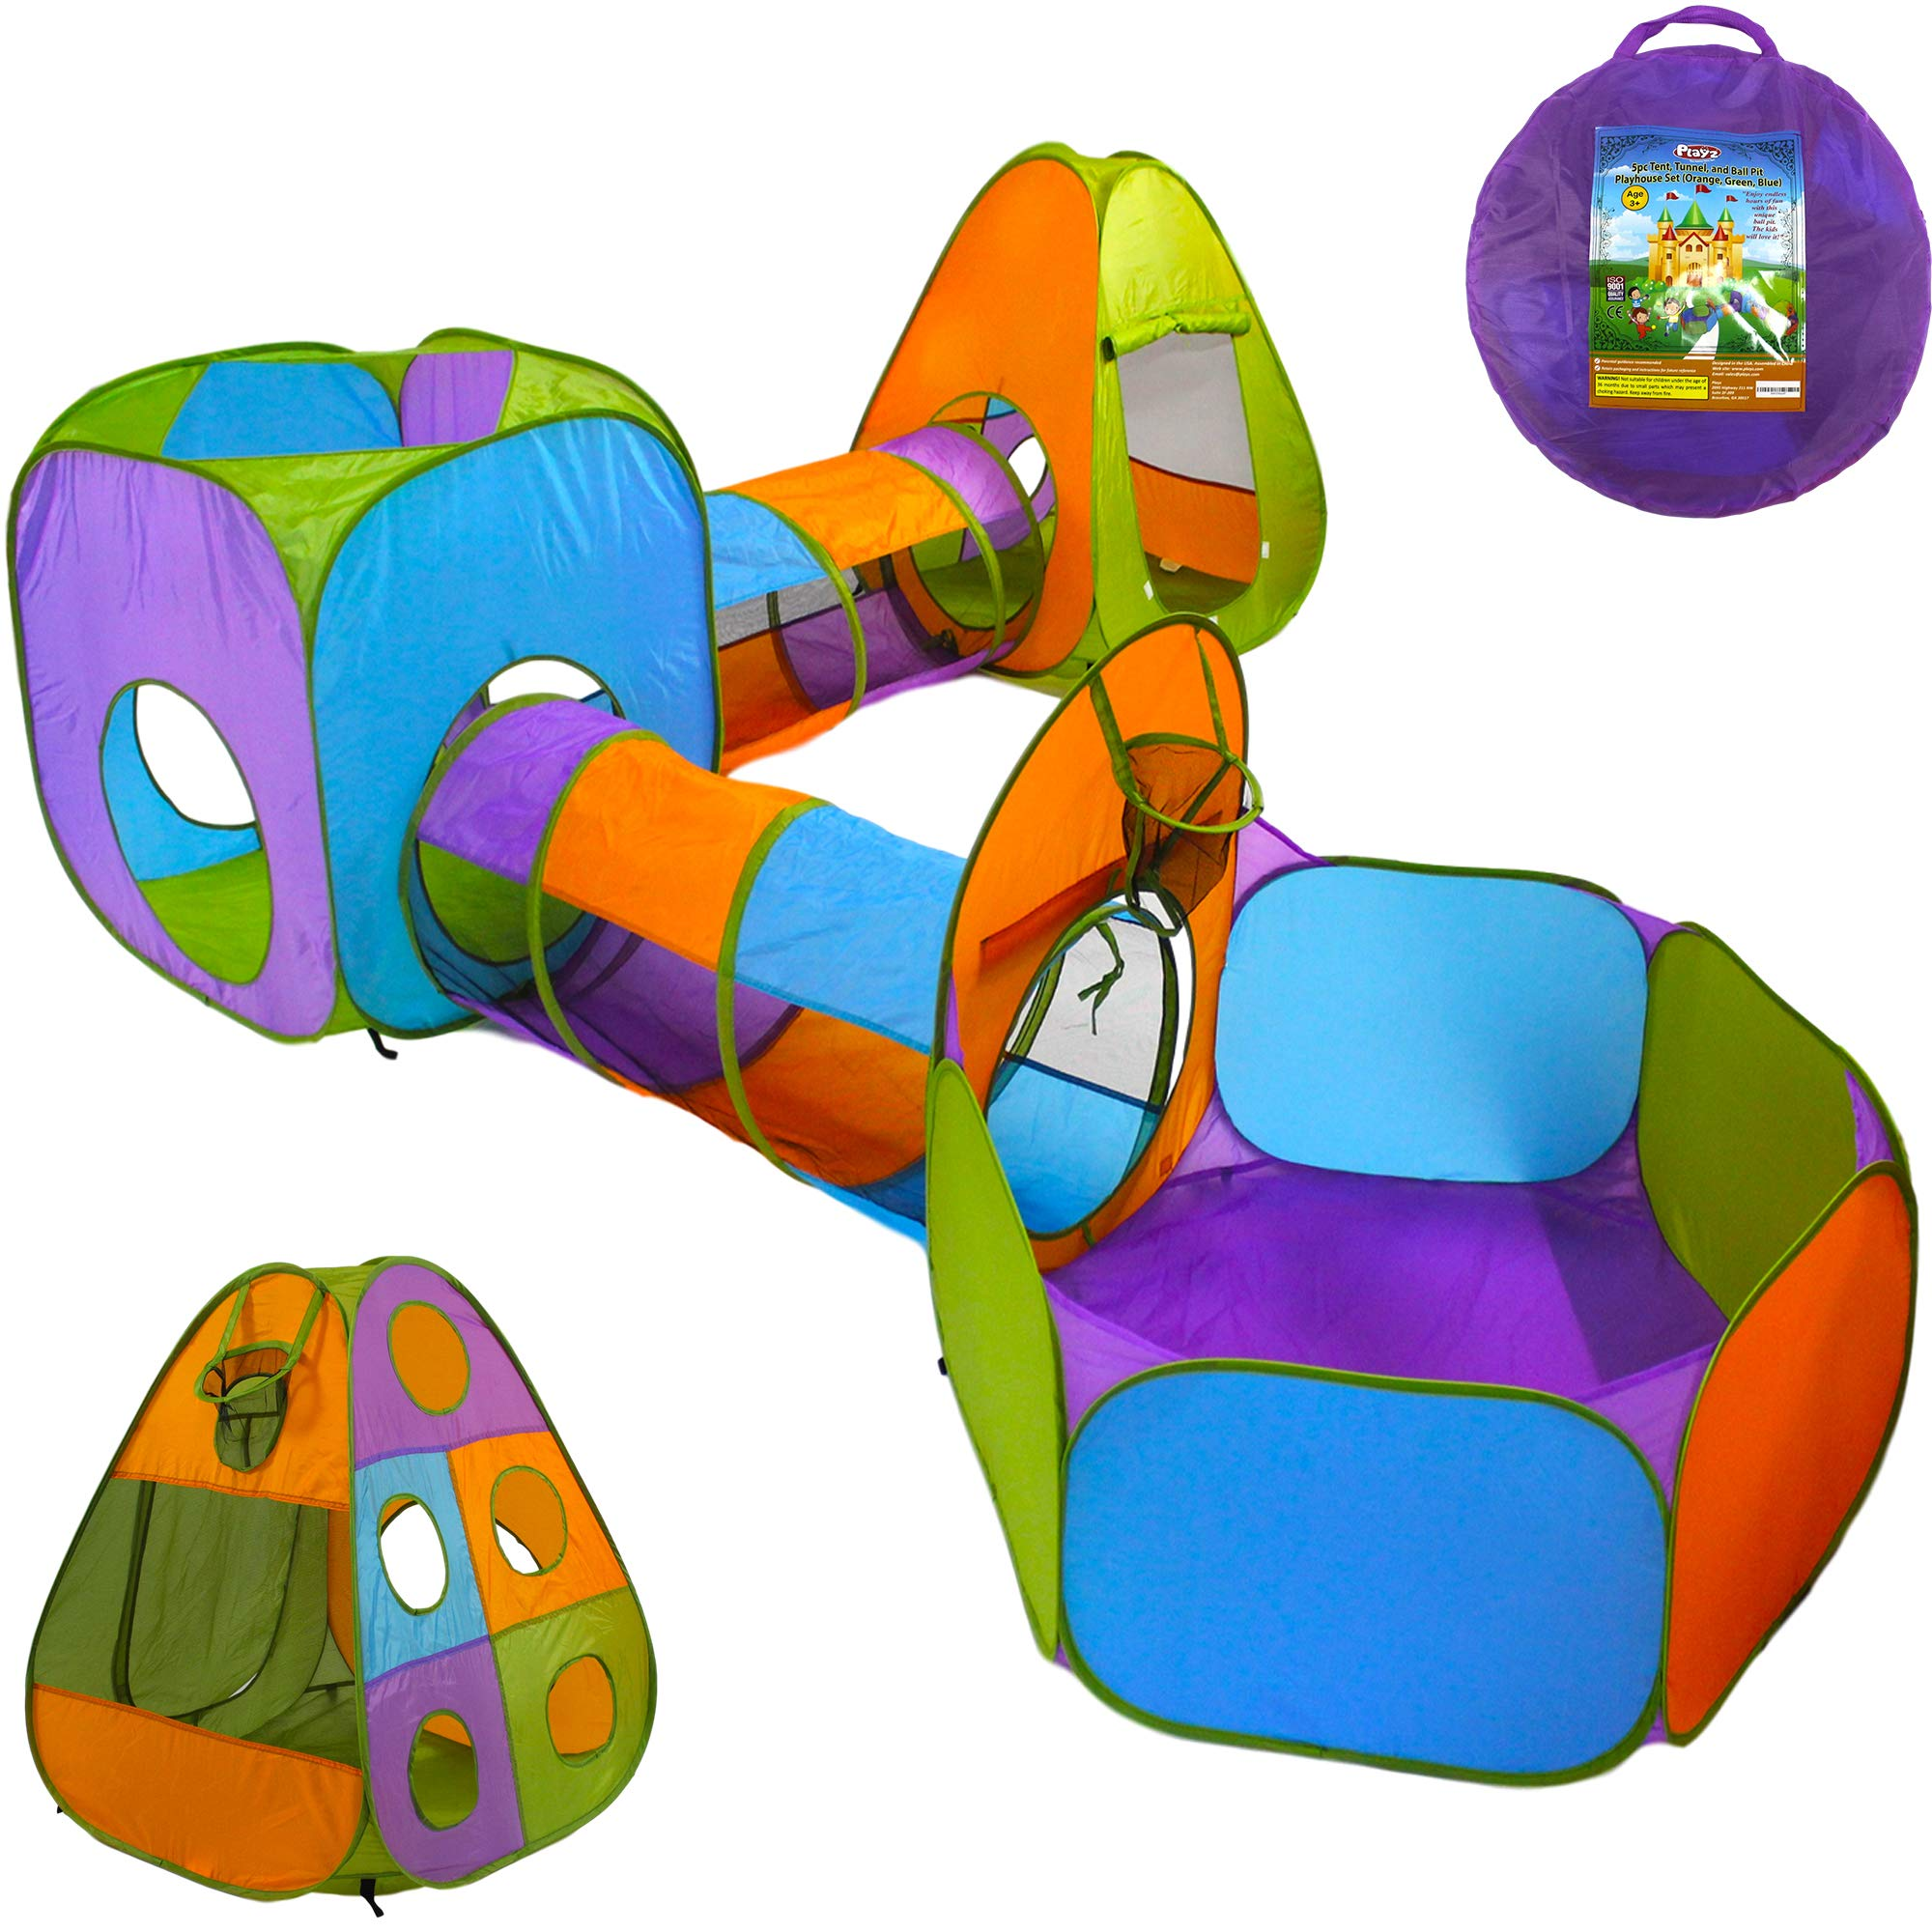 Playz 5-Piece Kids Pop up Play Tent Crawl Tunnel and Ball Pit with Basketball Hoop Playhouse for Boys, Girls, Babies, and Toddlers (Purple, Orange, Yellow, Red, Blue) by Playz